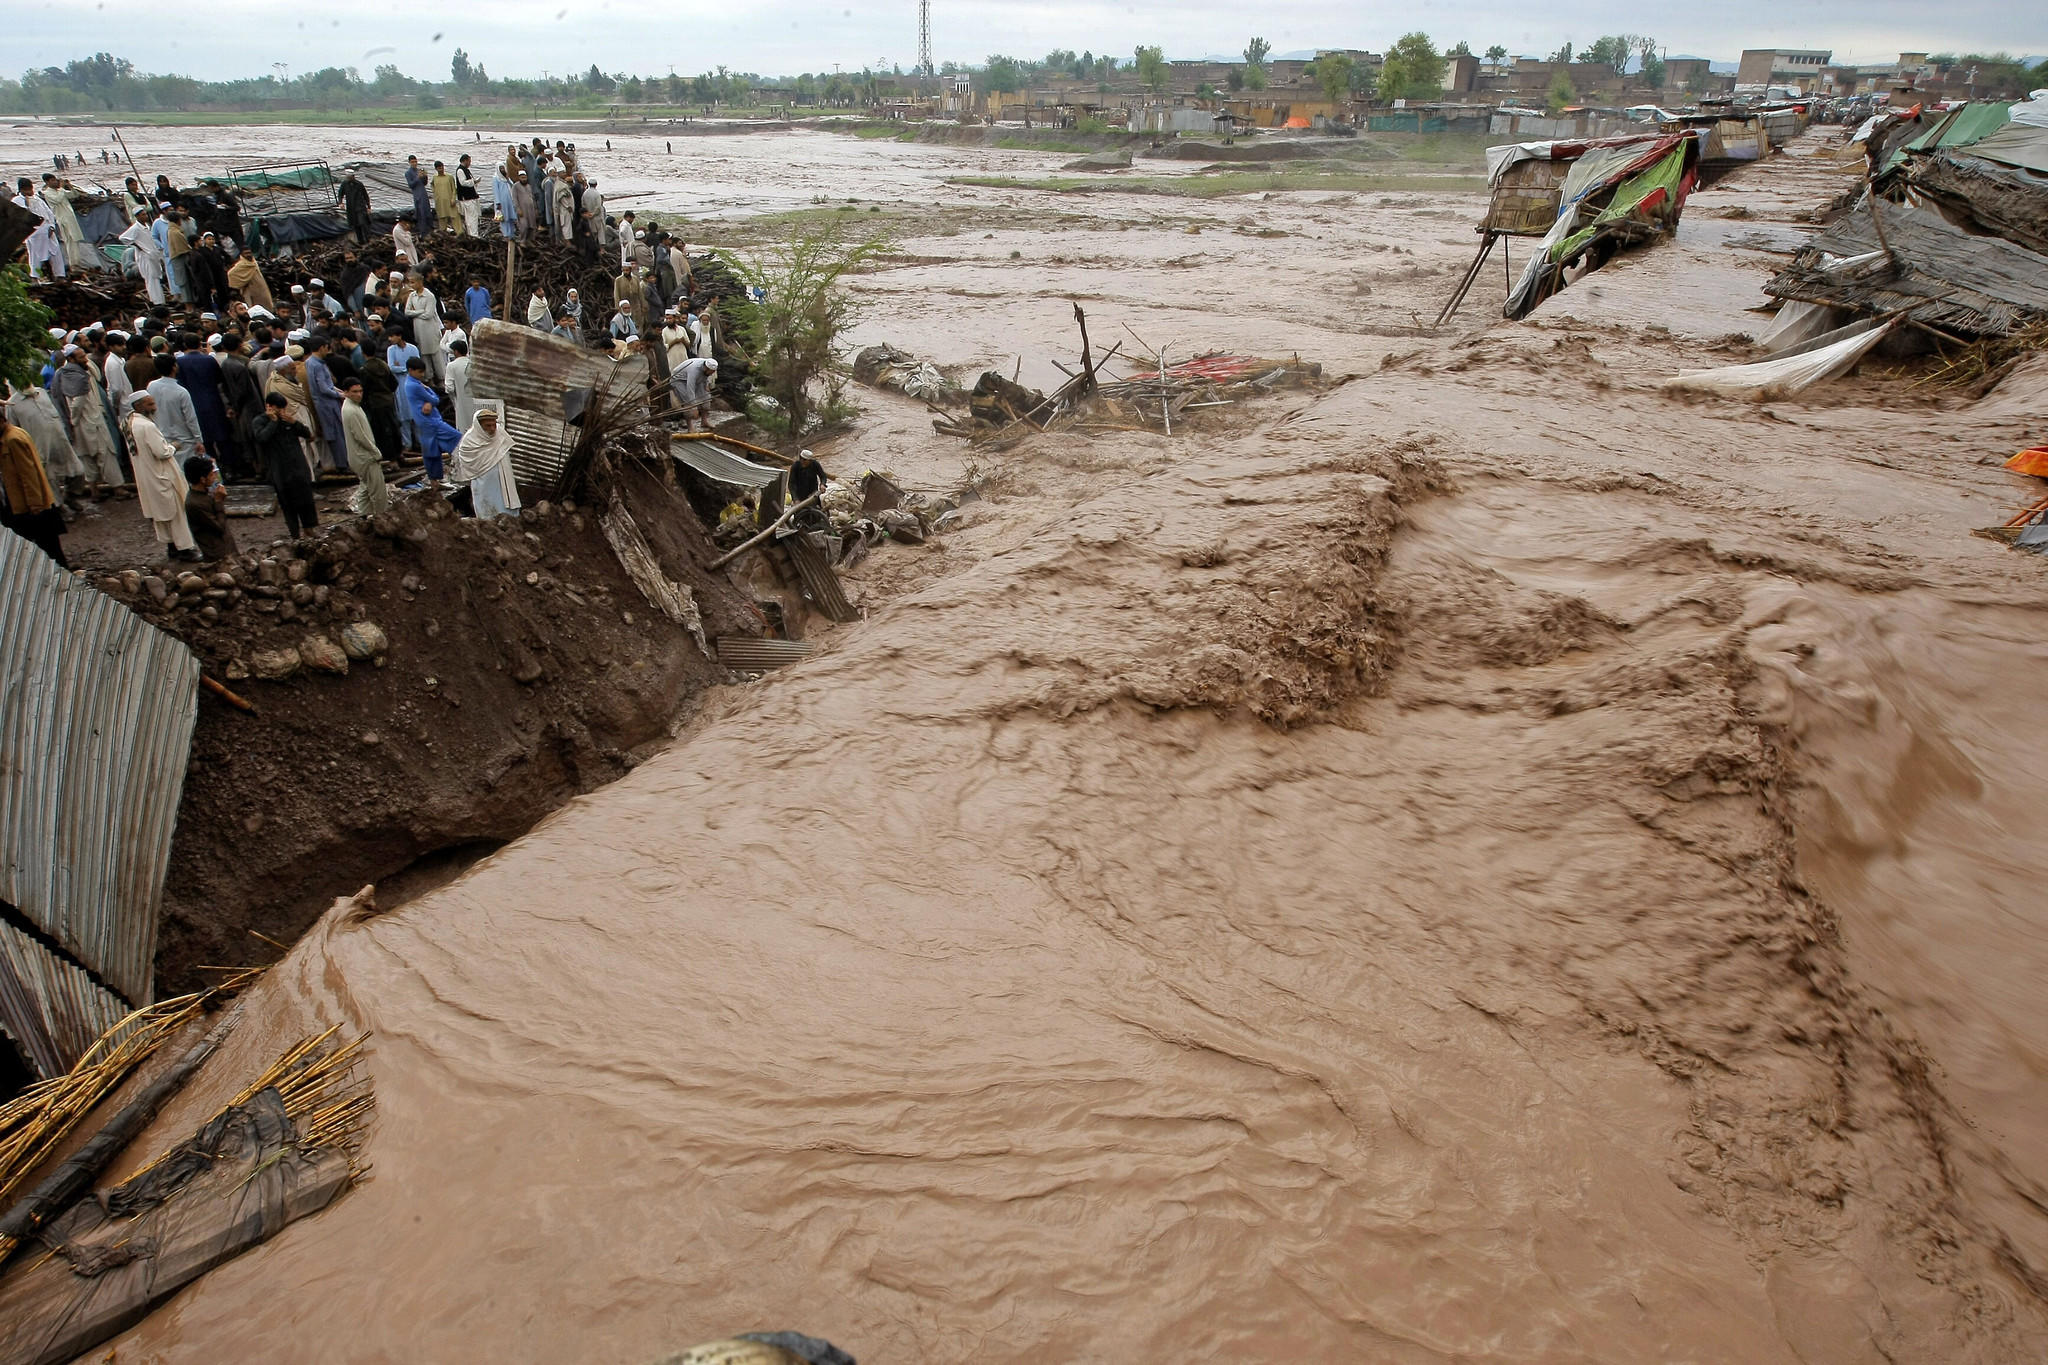 Villagers watch water rush in during a flash flood.